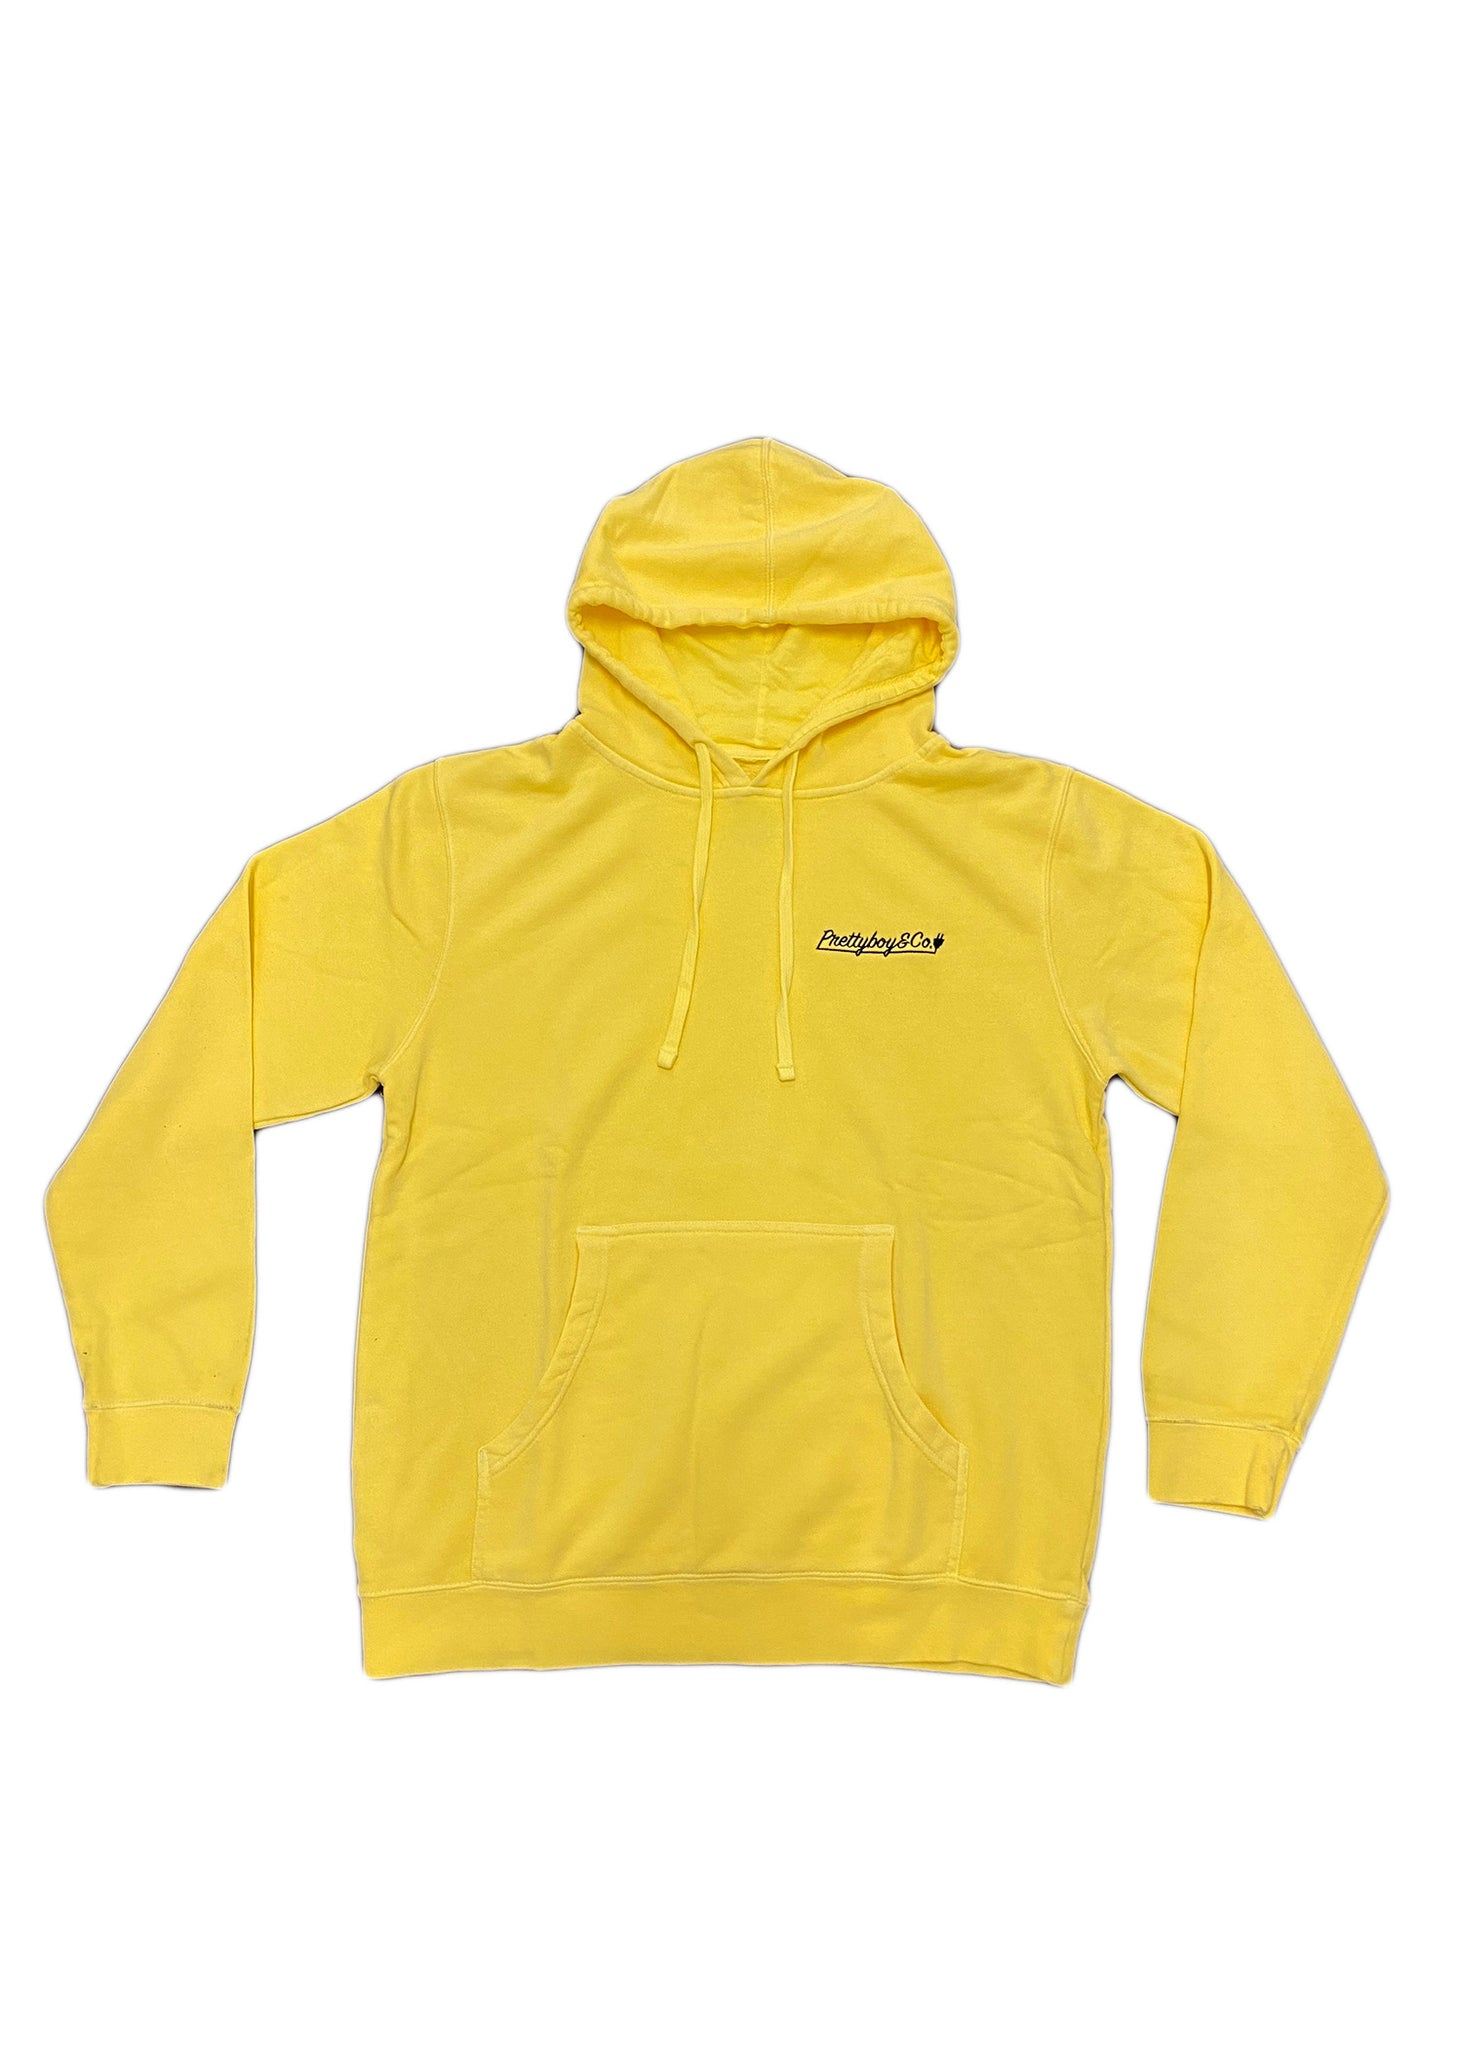 Premium Canary Yellow Embroidered Script Hoodie